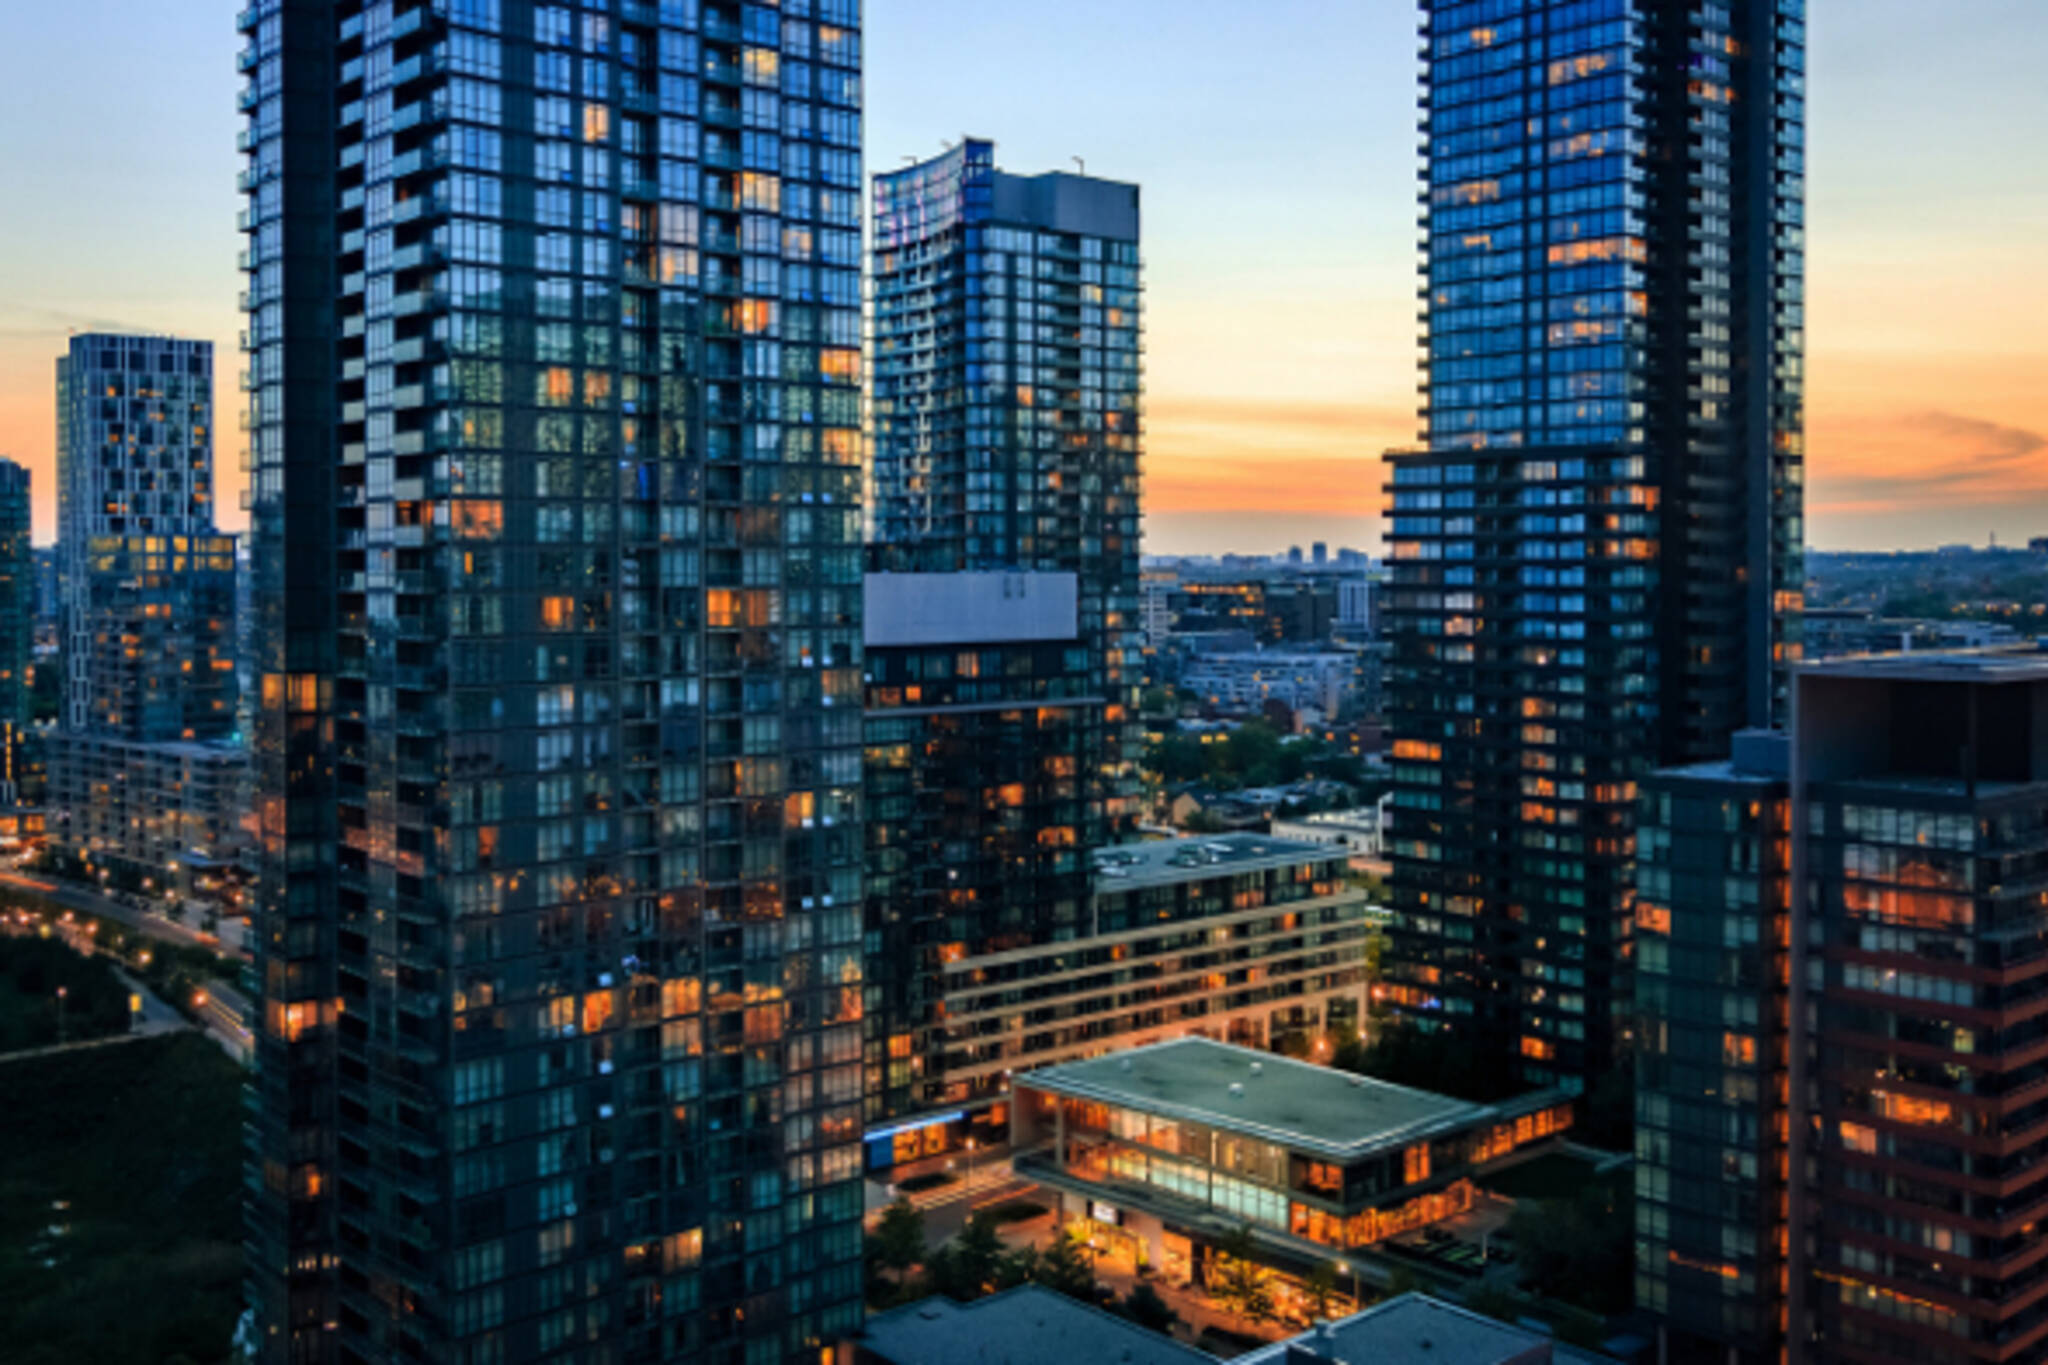 Average Cost To Rent A Condo In Toronto Goes Way Up